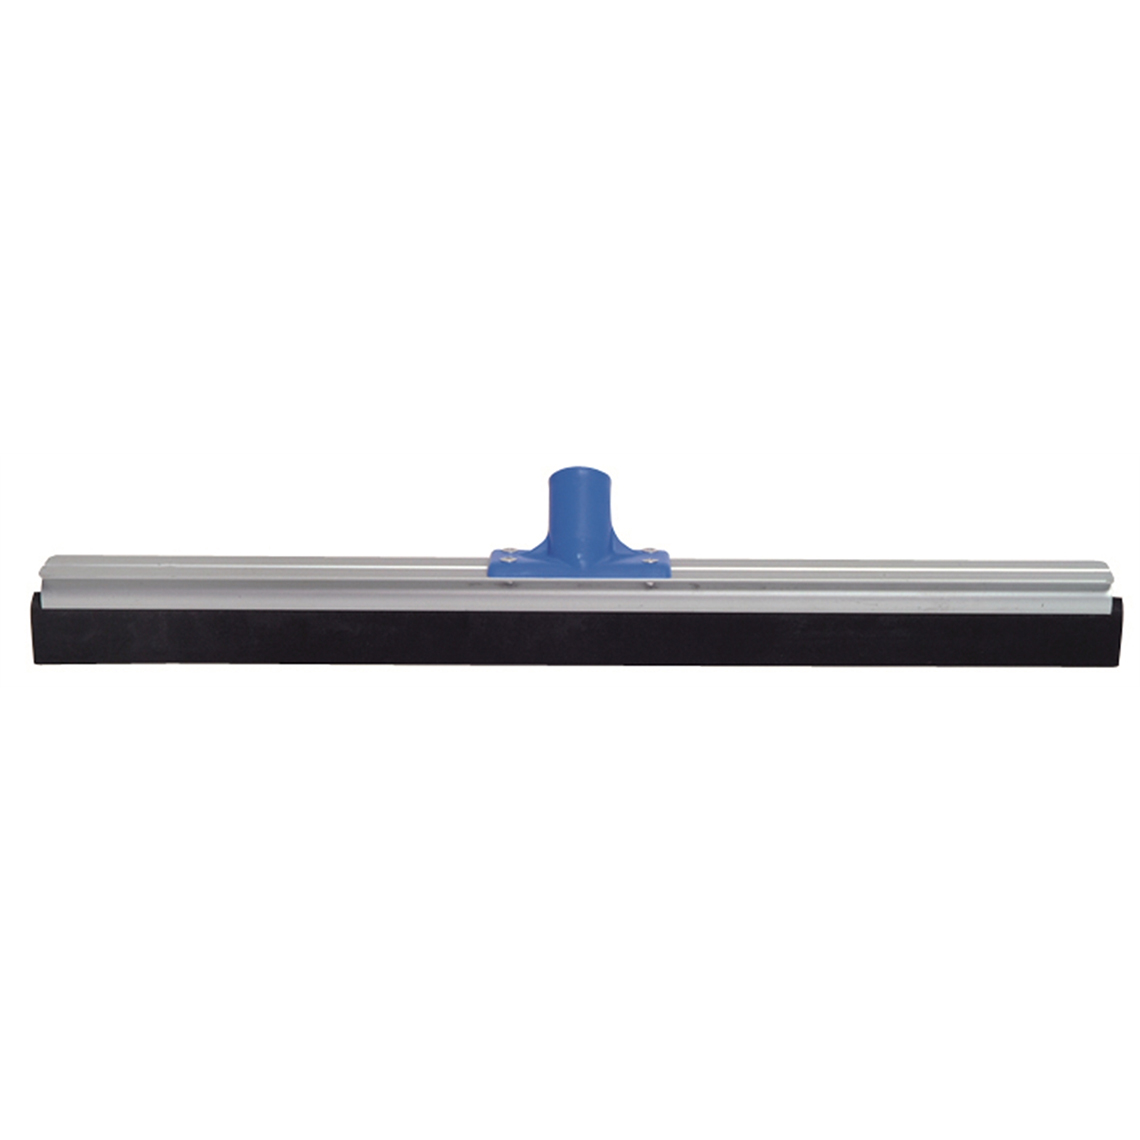 Aluminium Floor Squeegee - 600mm - Blue